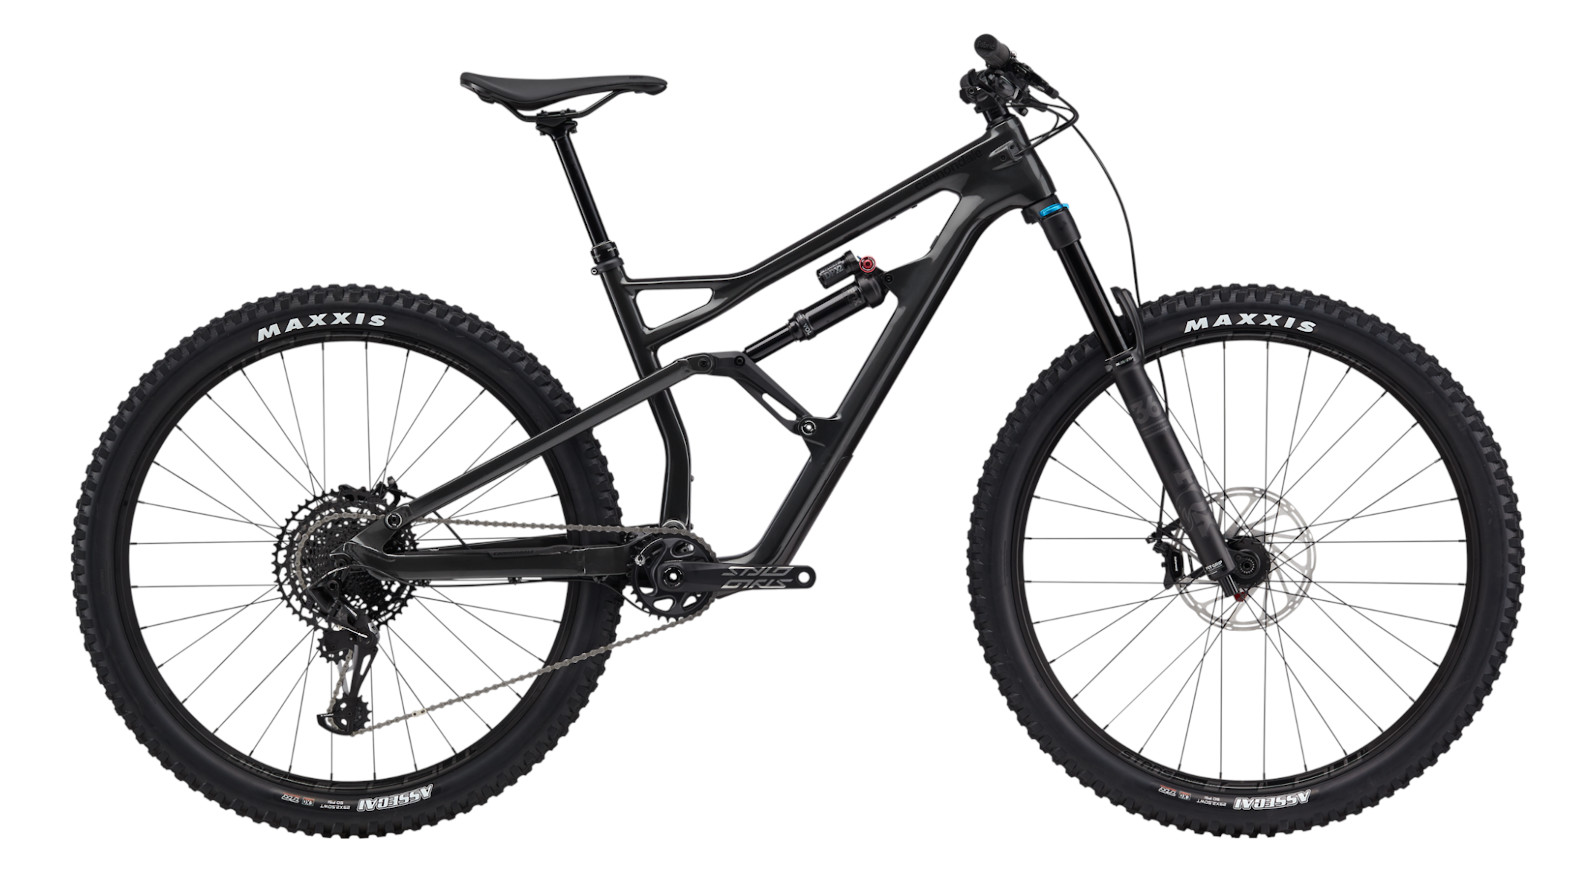 2020 Cannondale Jekyll Carbon 29 3